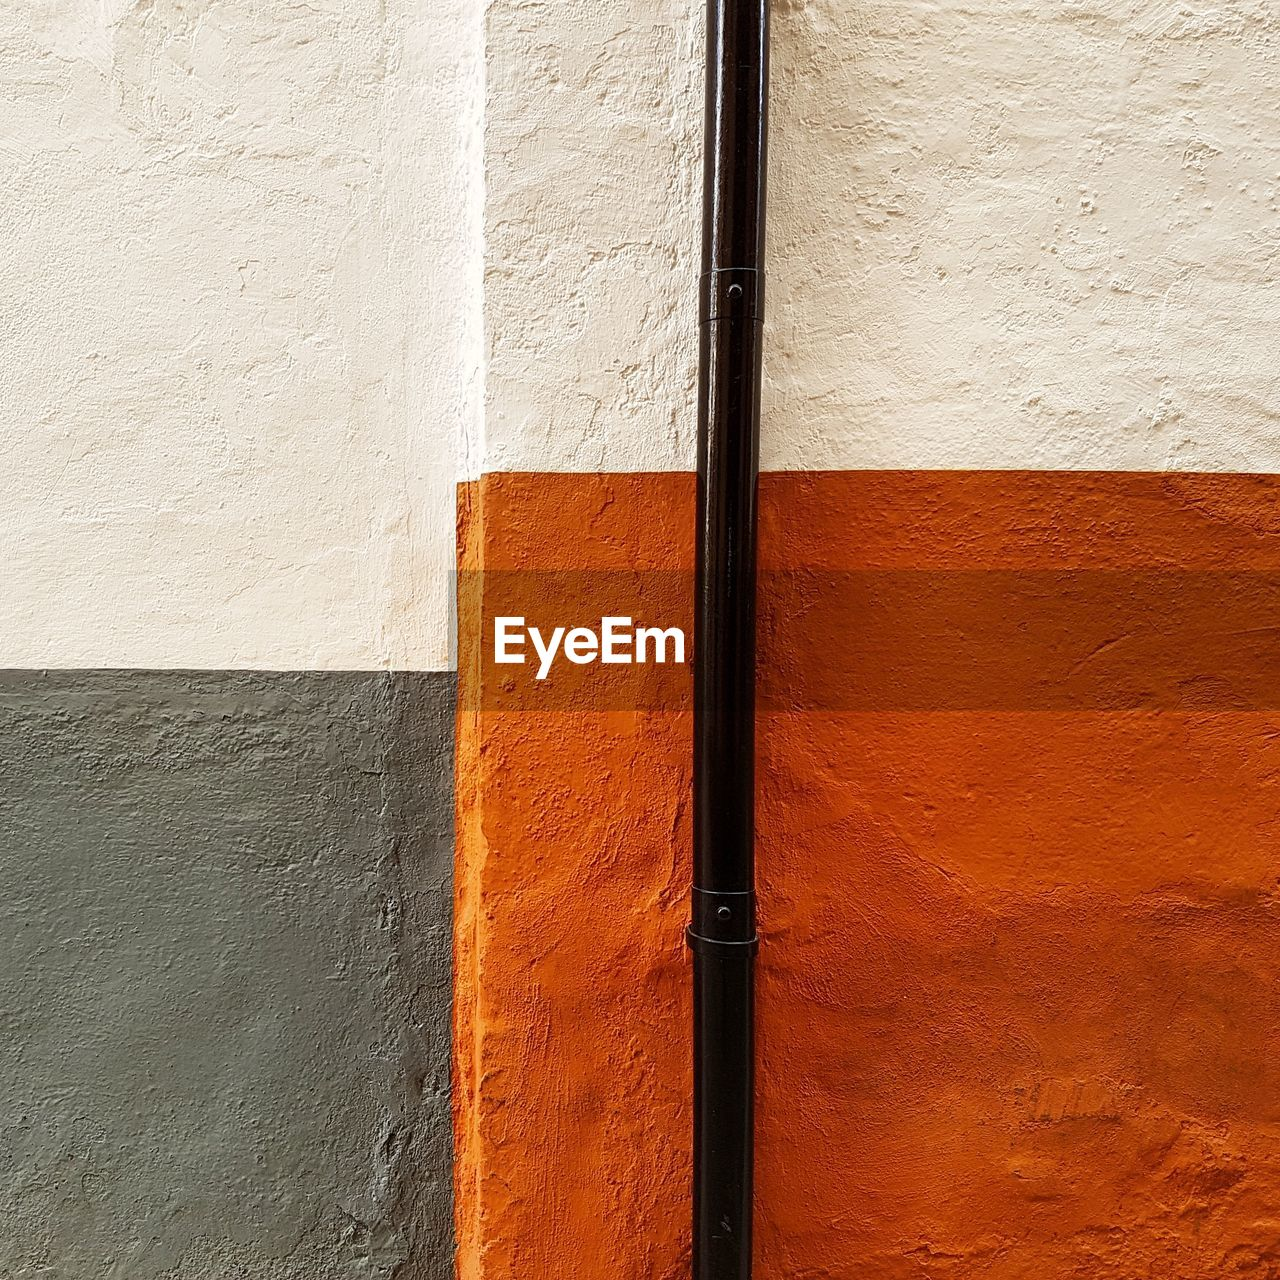 wall - building feature, built structure, architecture, building exterior, no people, day, close-up, textured, full frame, white color, outdoors, pipe - tube, backgrounds, orange color, wall, sunlight, wood - material, pattern, rough, safety, concrete